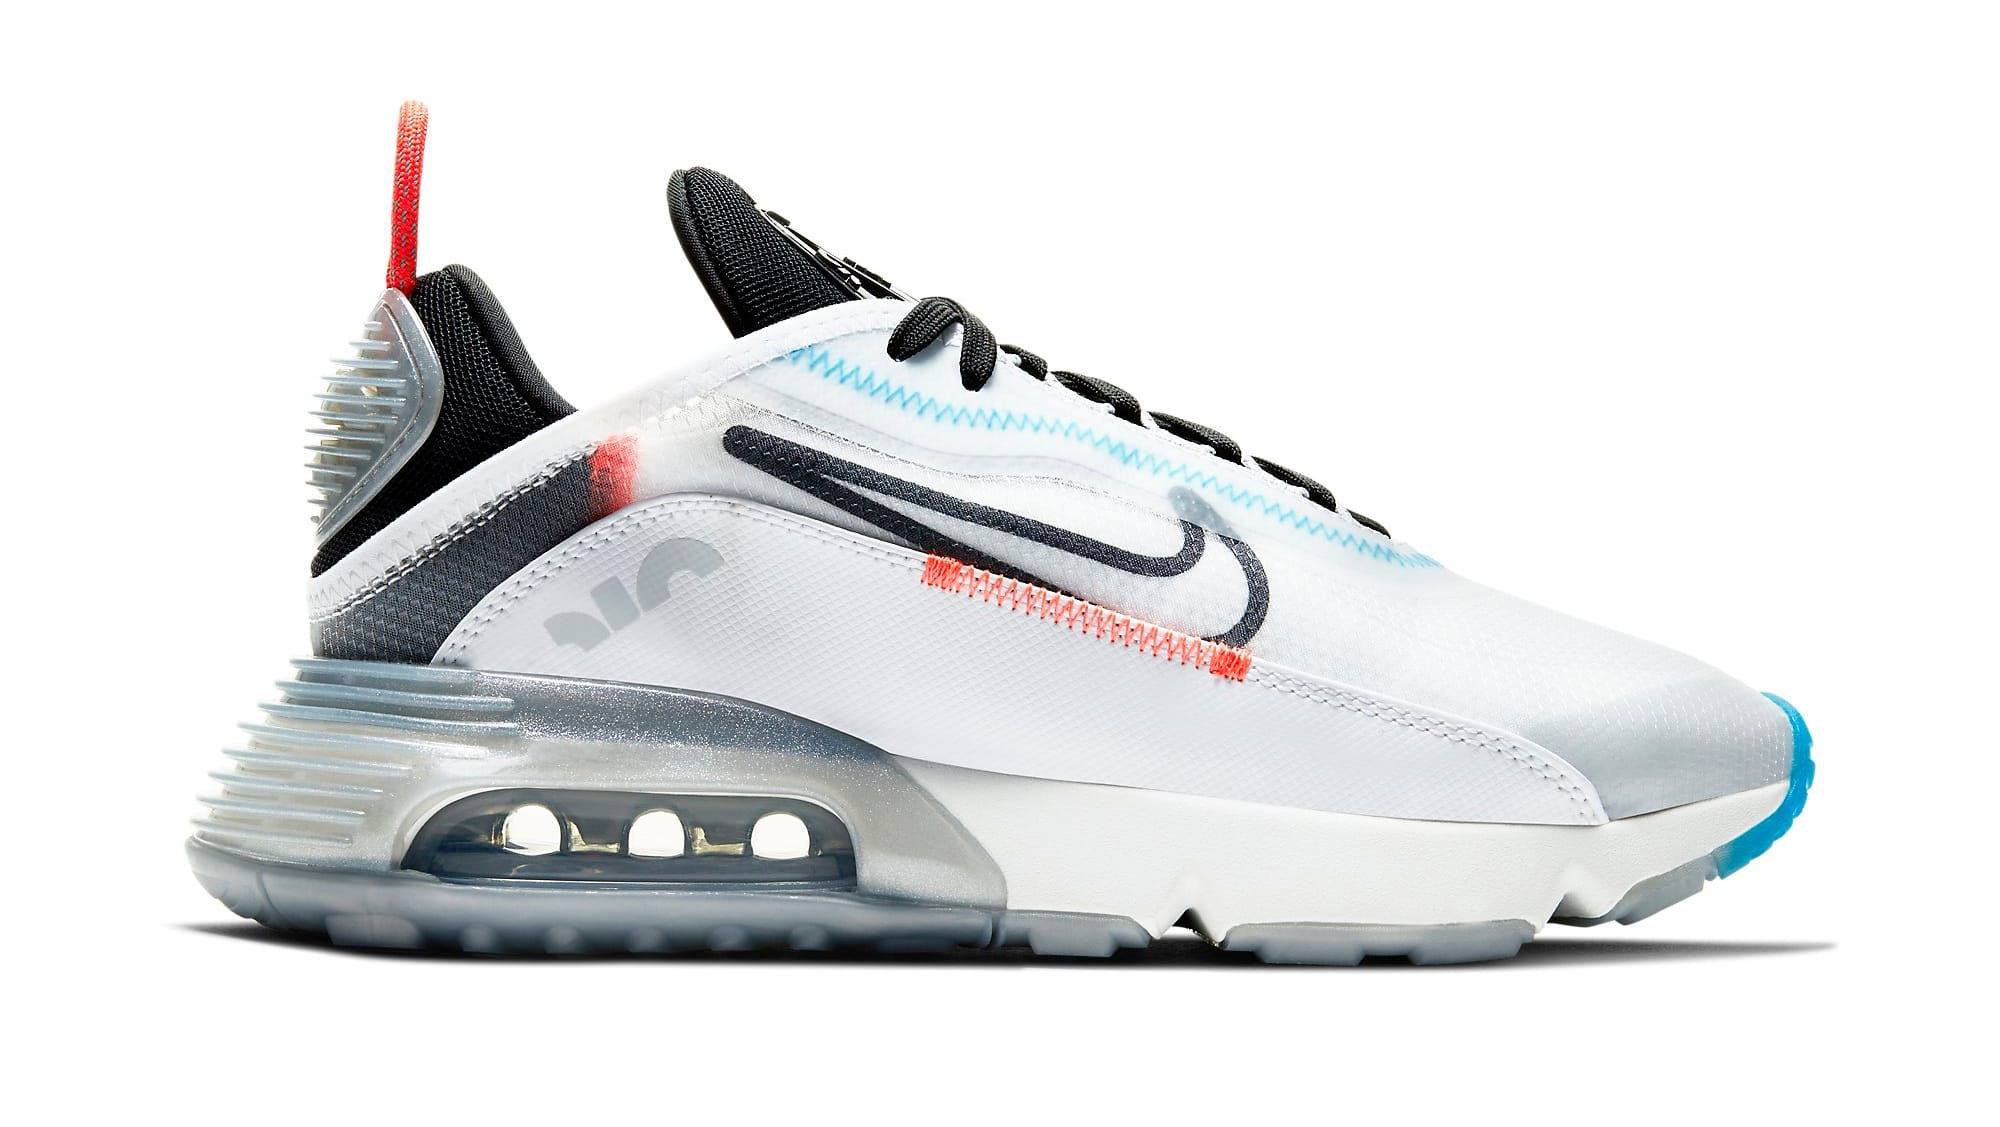 nike-air-max-2090-white-black-pure-platinum-bright-crimson-ct7698-100-release-date